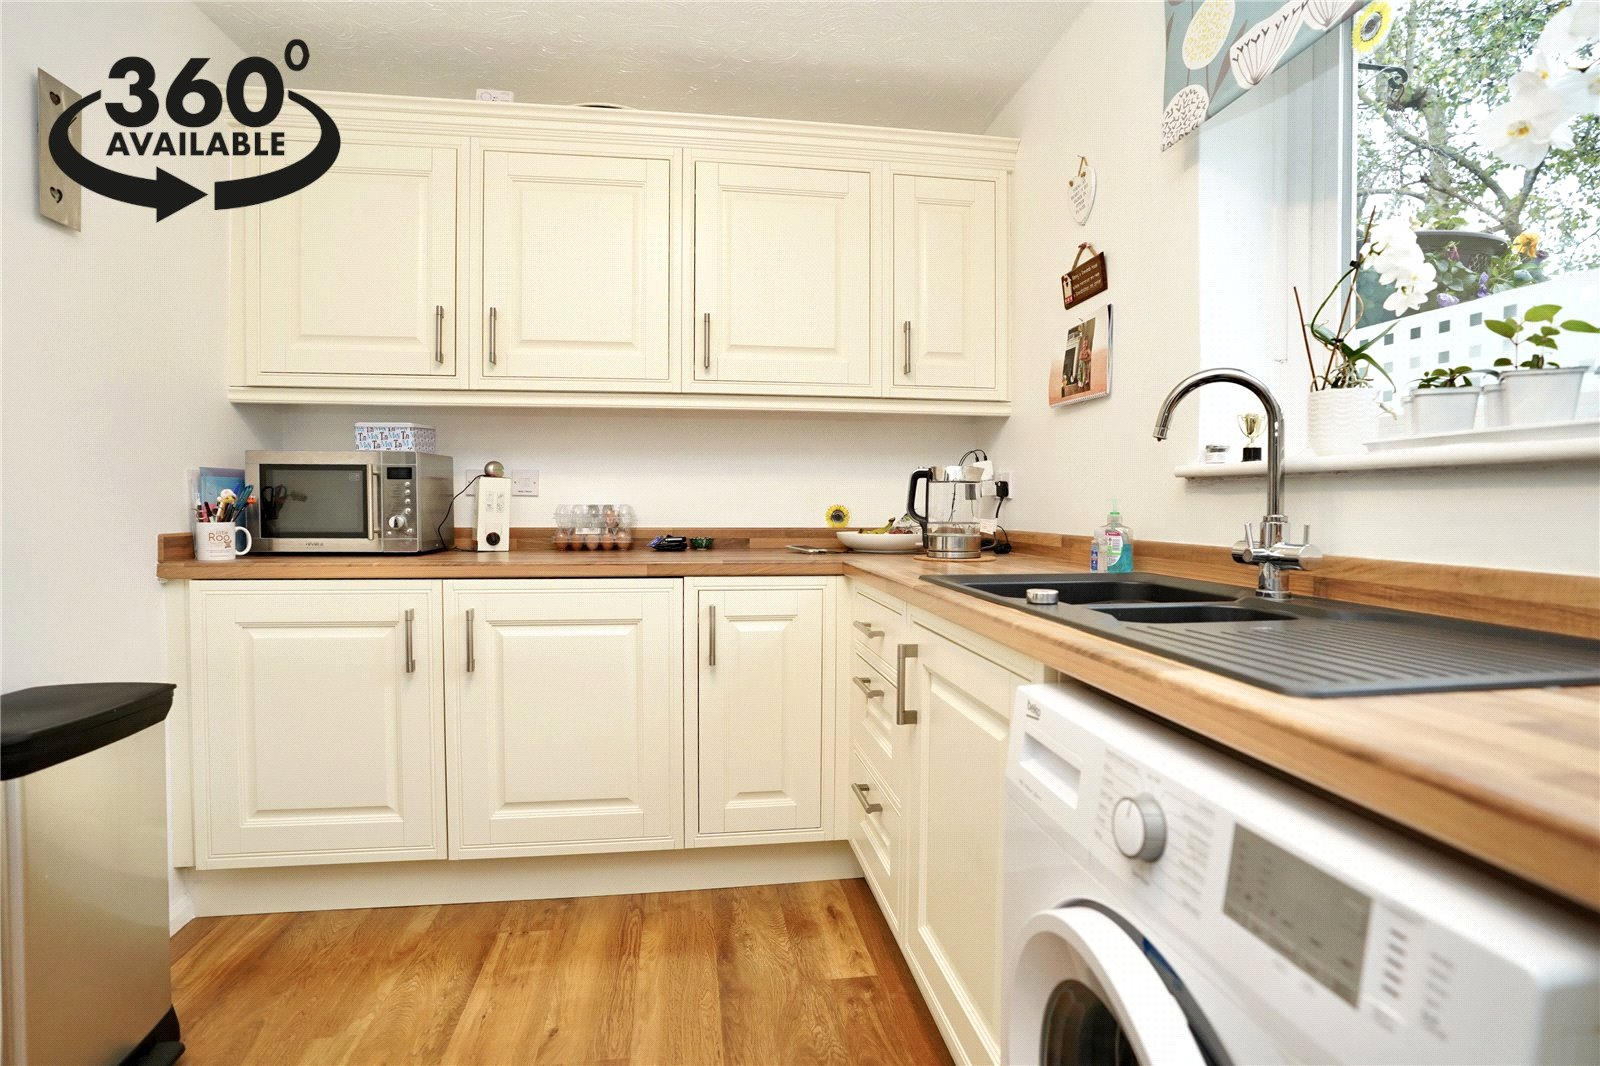 2 bed house for sale in Chawston Close, Eaton Socon - Property Image 1